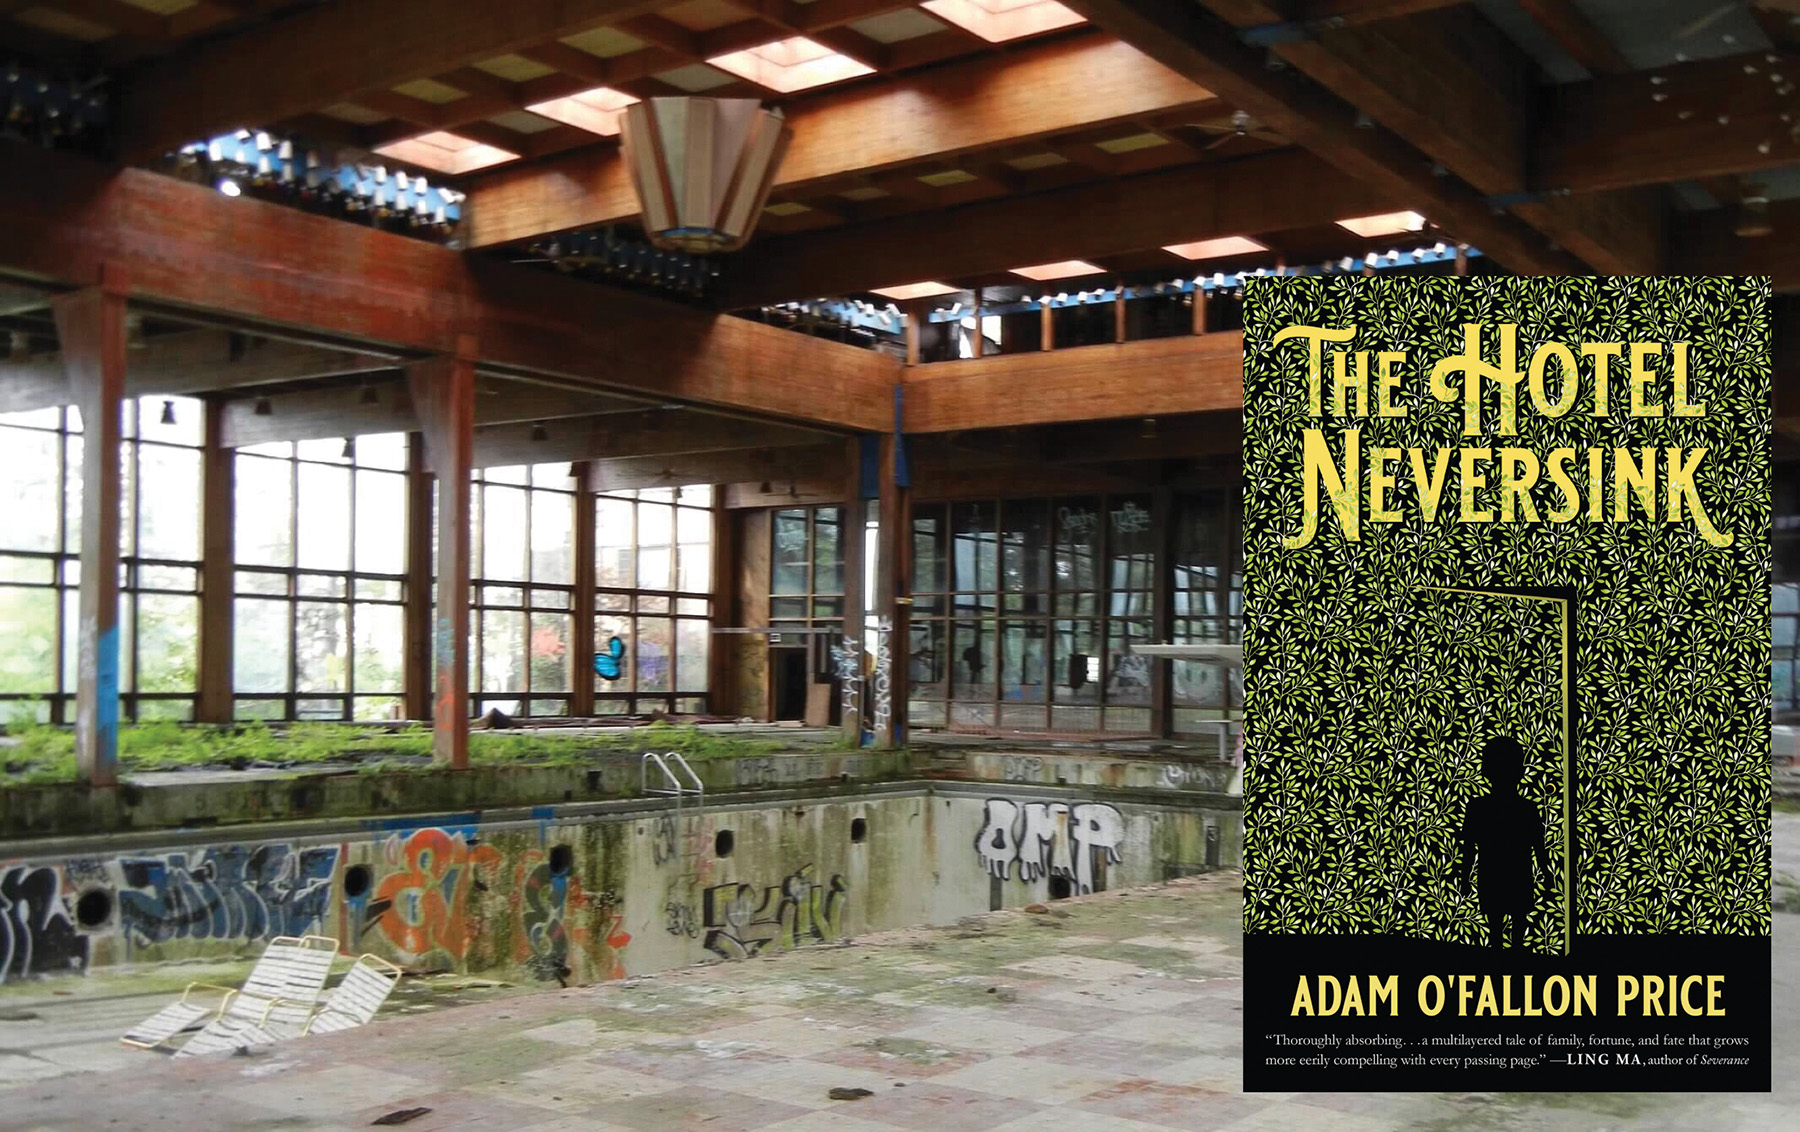 A Literary Getaway Along The Neversink | Jewish Week